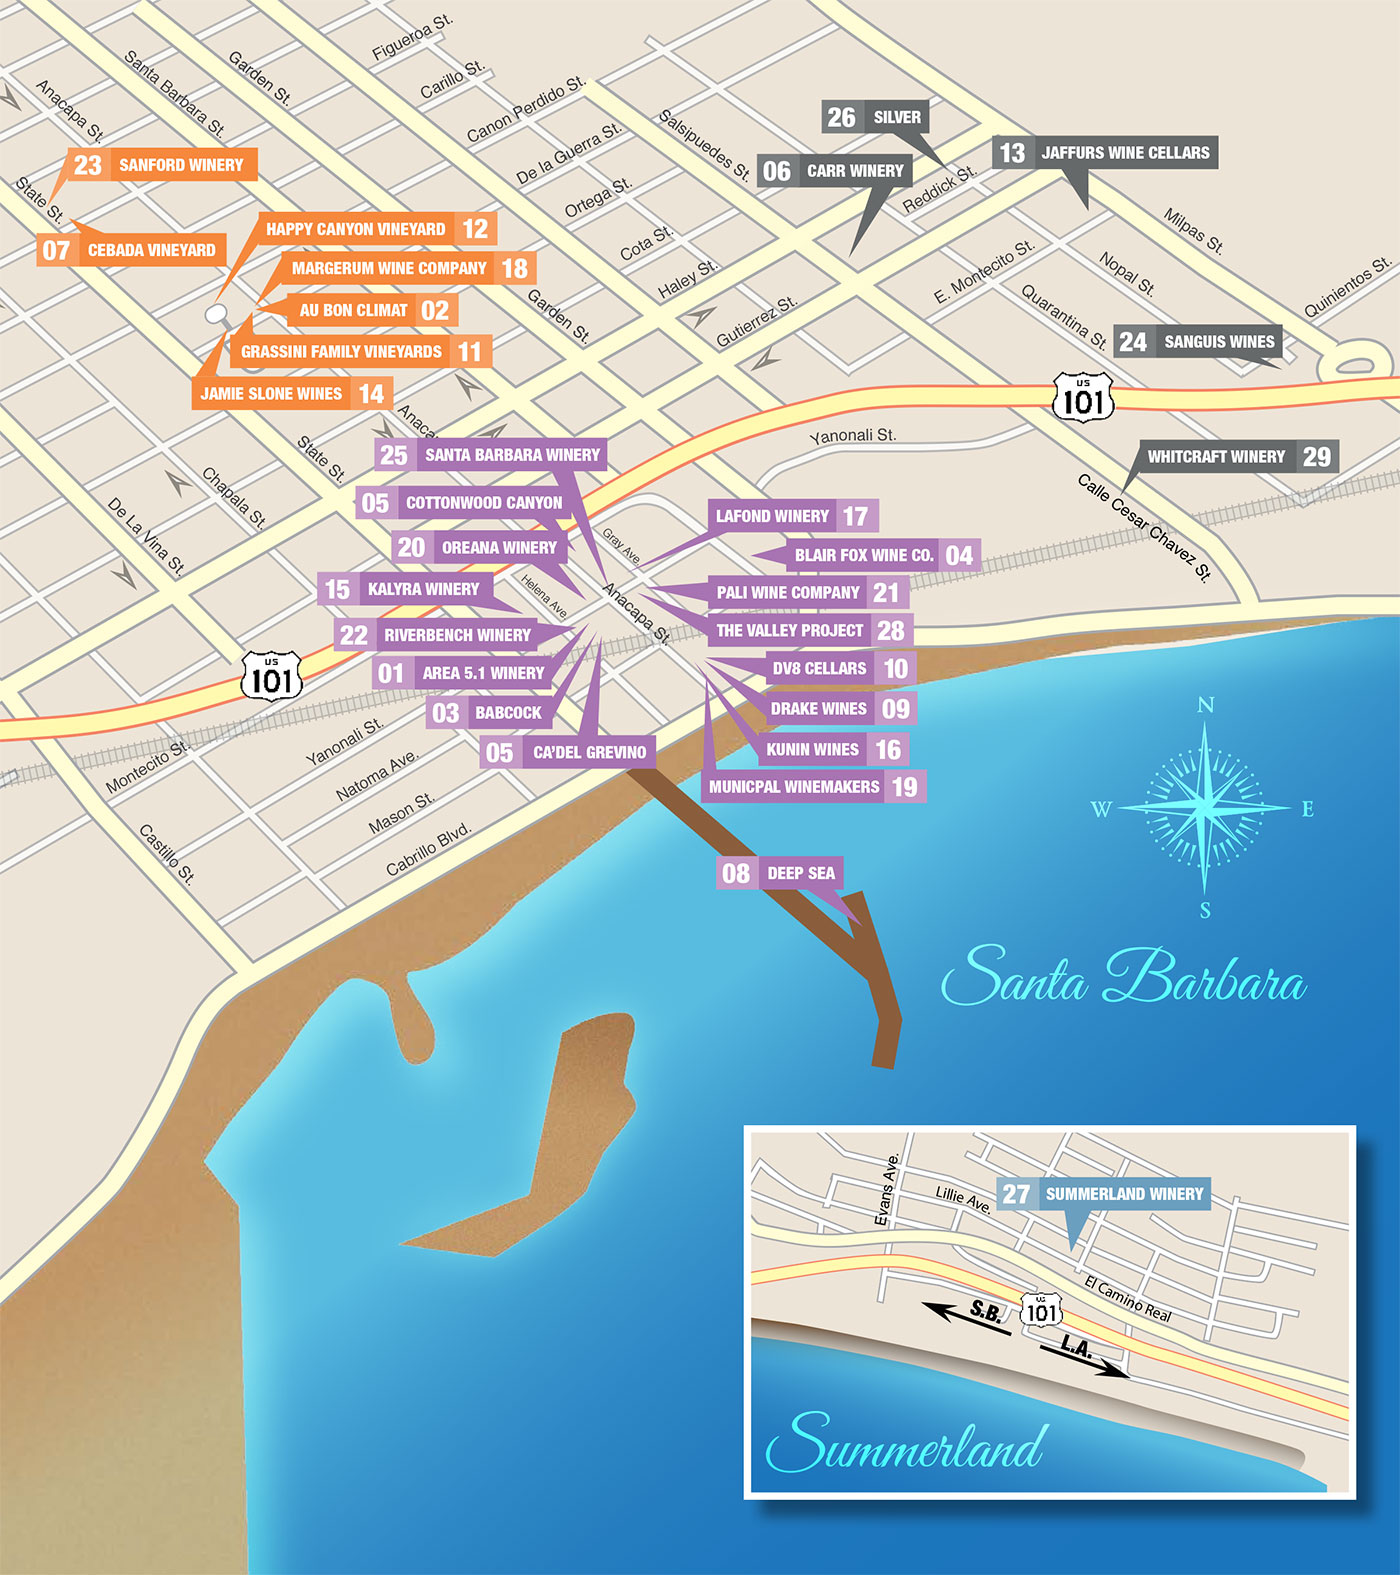 A map of downtown Santa Barbara wineries